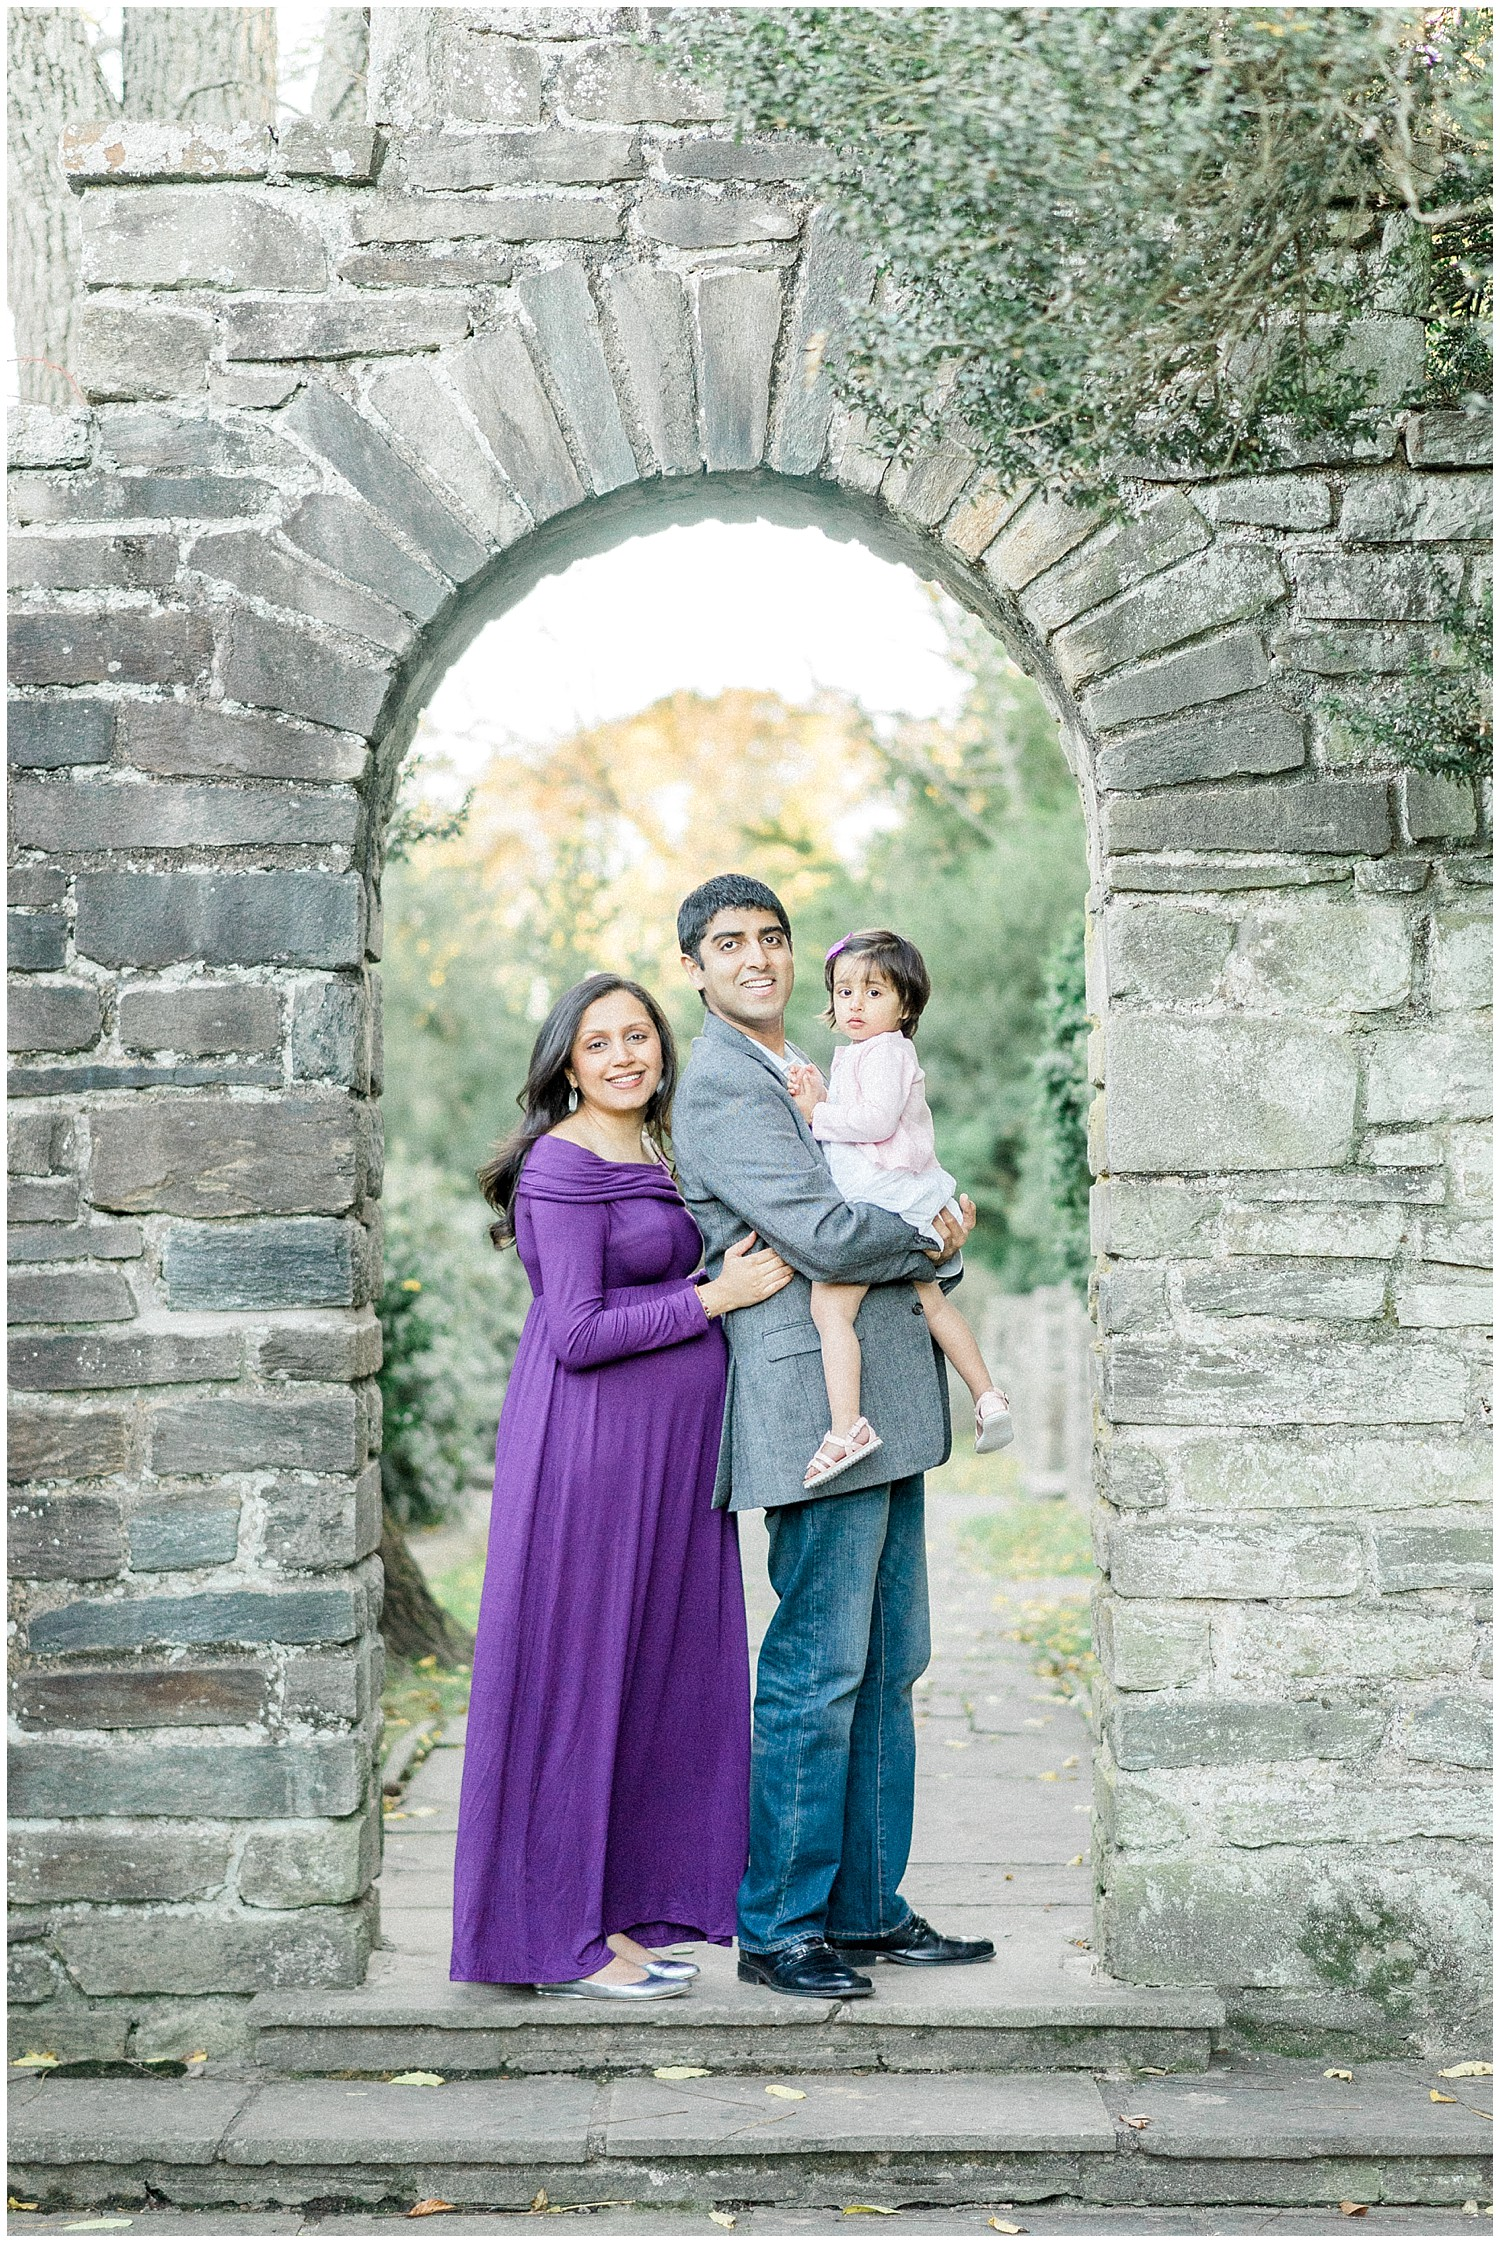 Winnie Dora Photography- Rockville, Maryland Maternity Session at Glenview Mansion